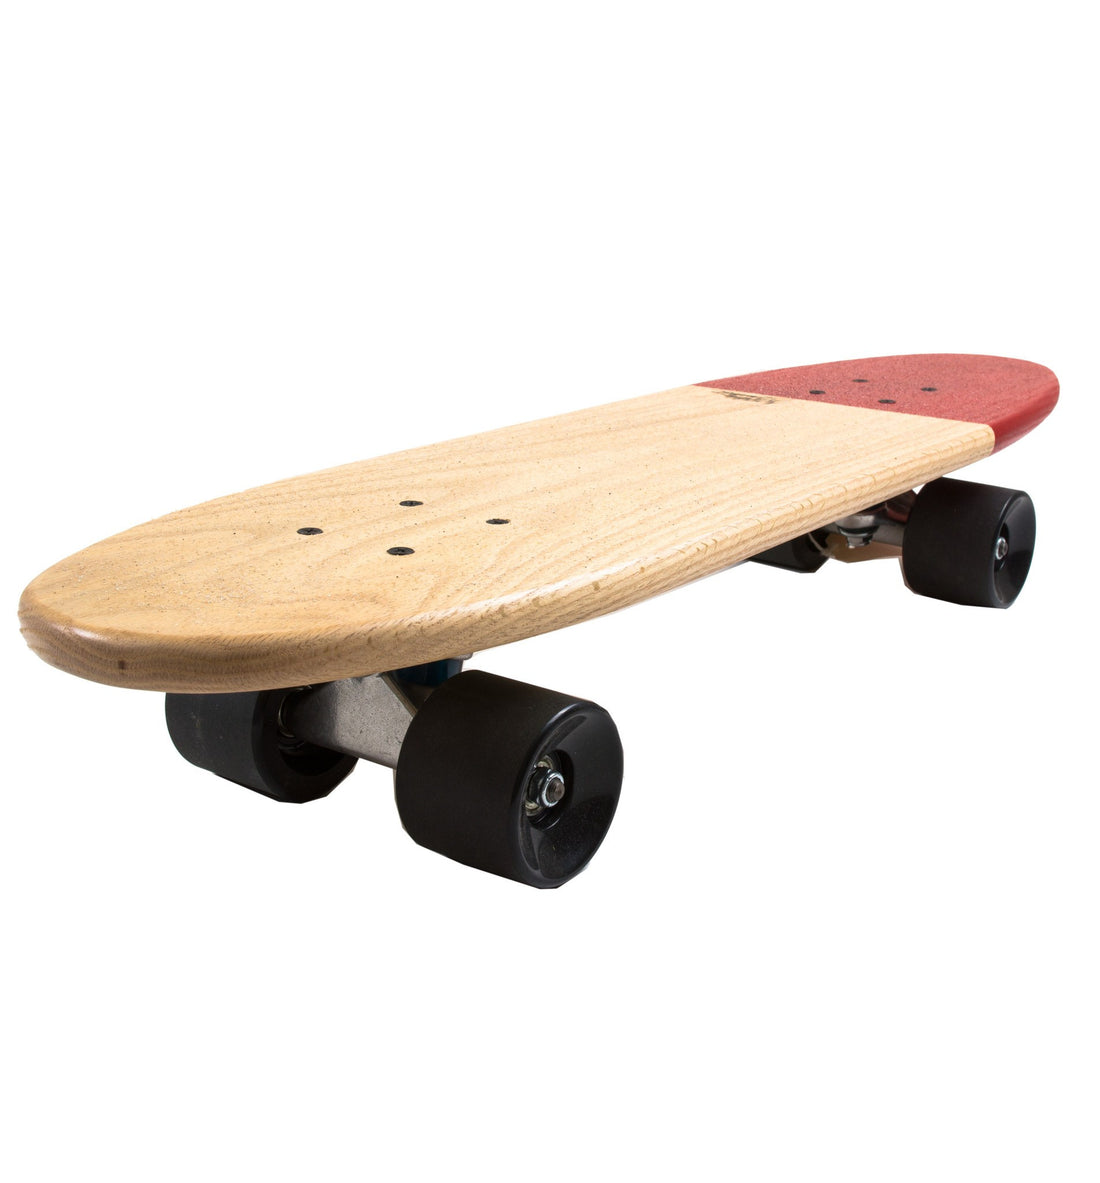 World's Greatest Skateboard- Color Block - Skate - Iron and Resin